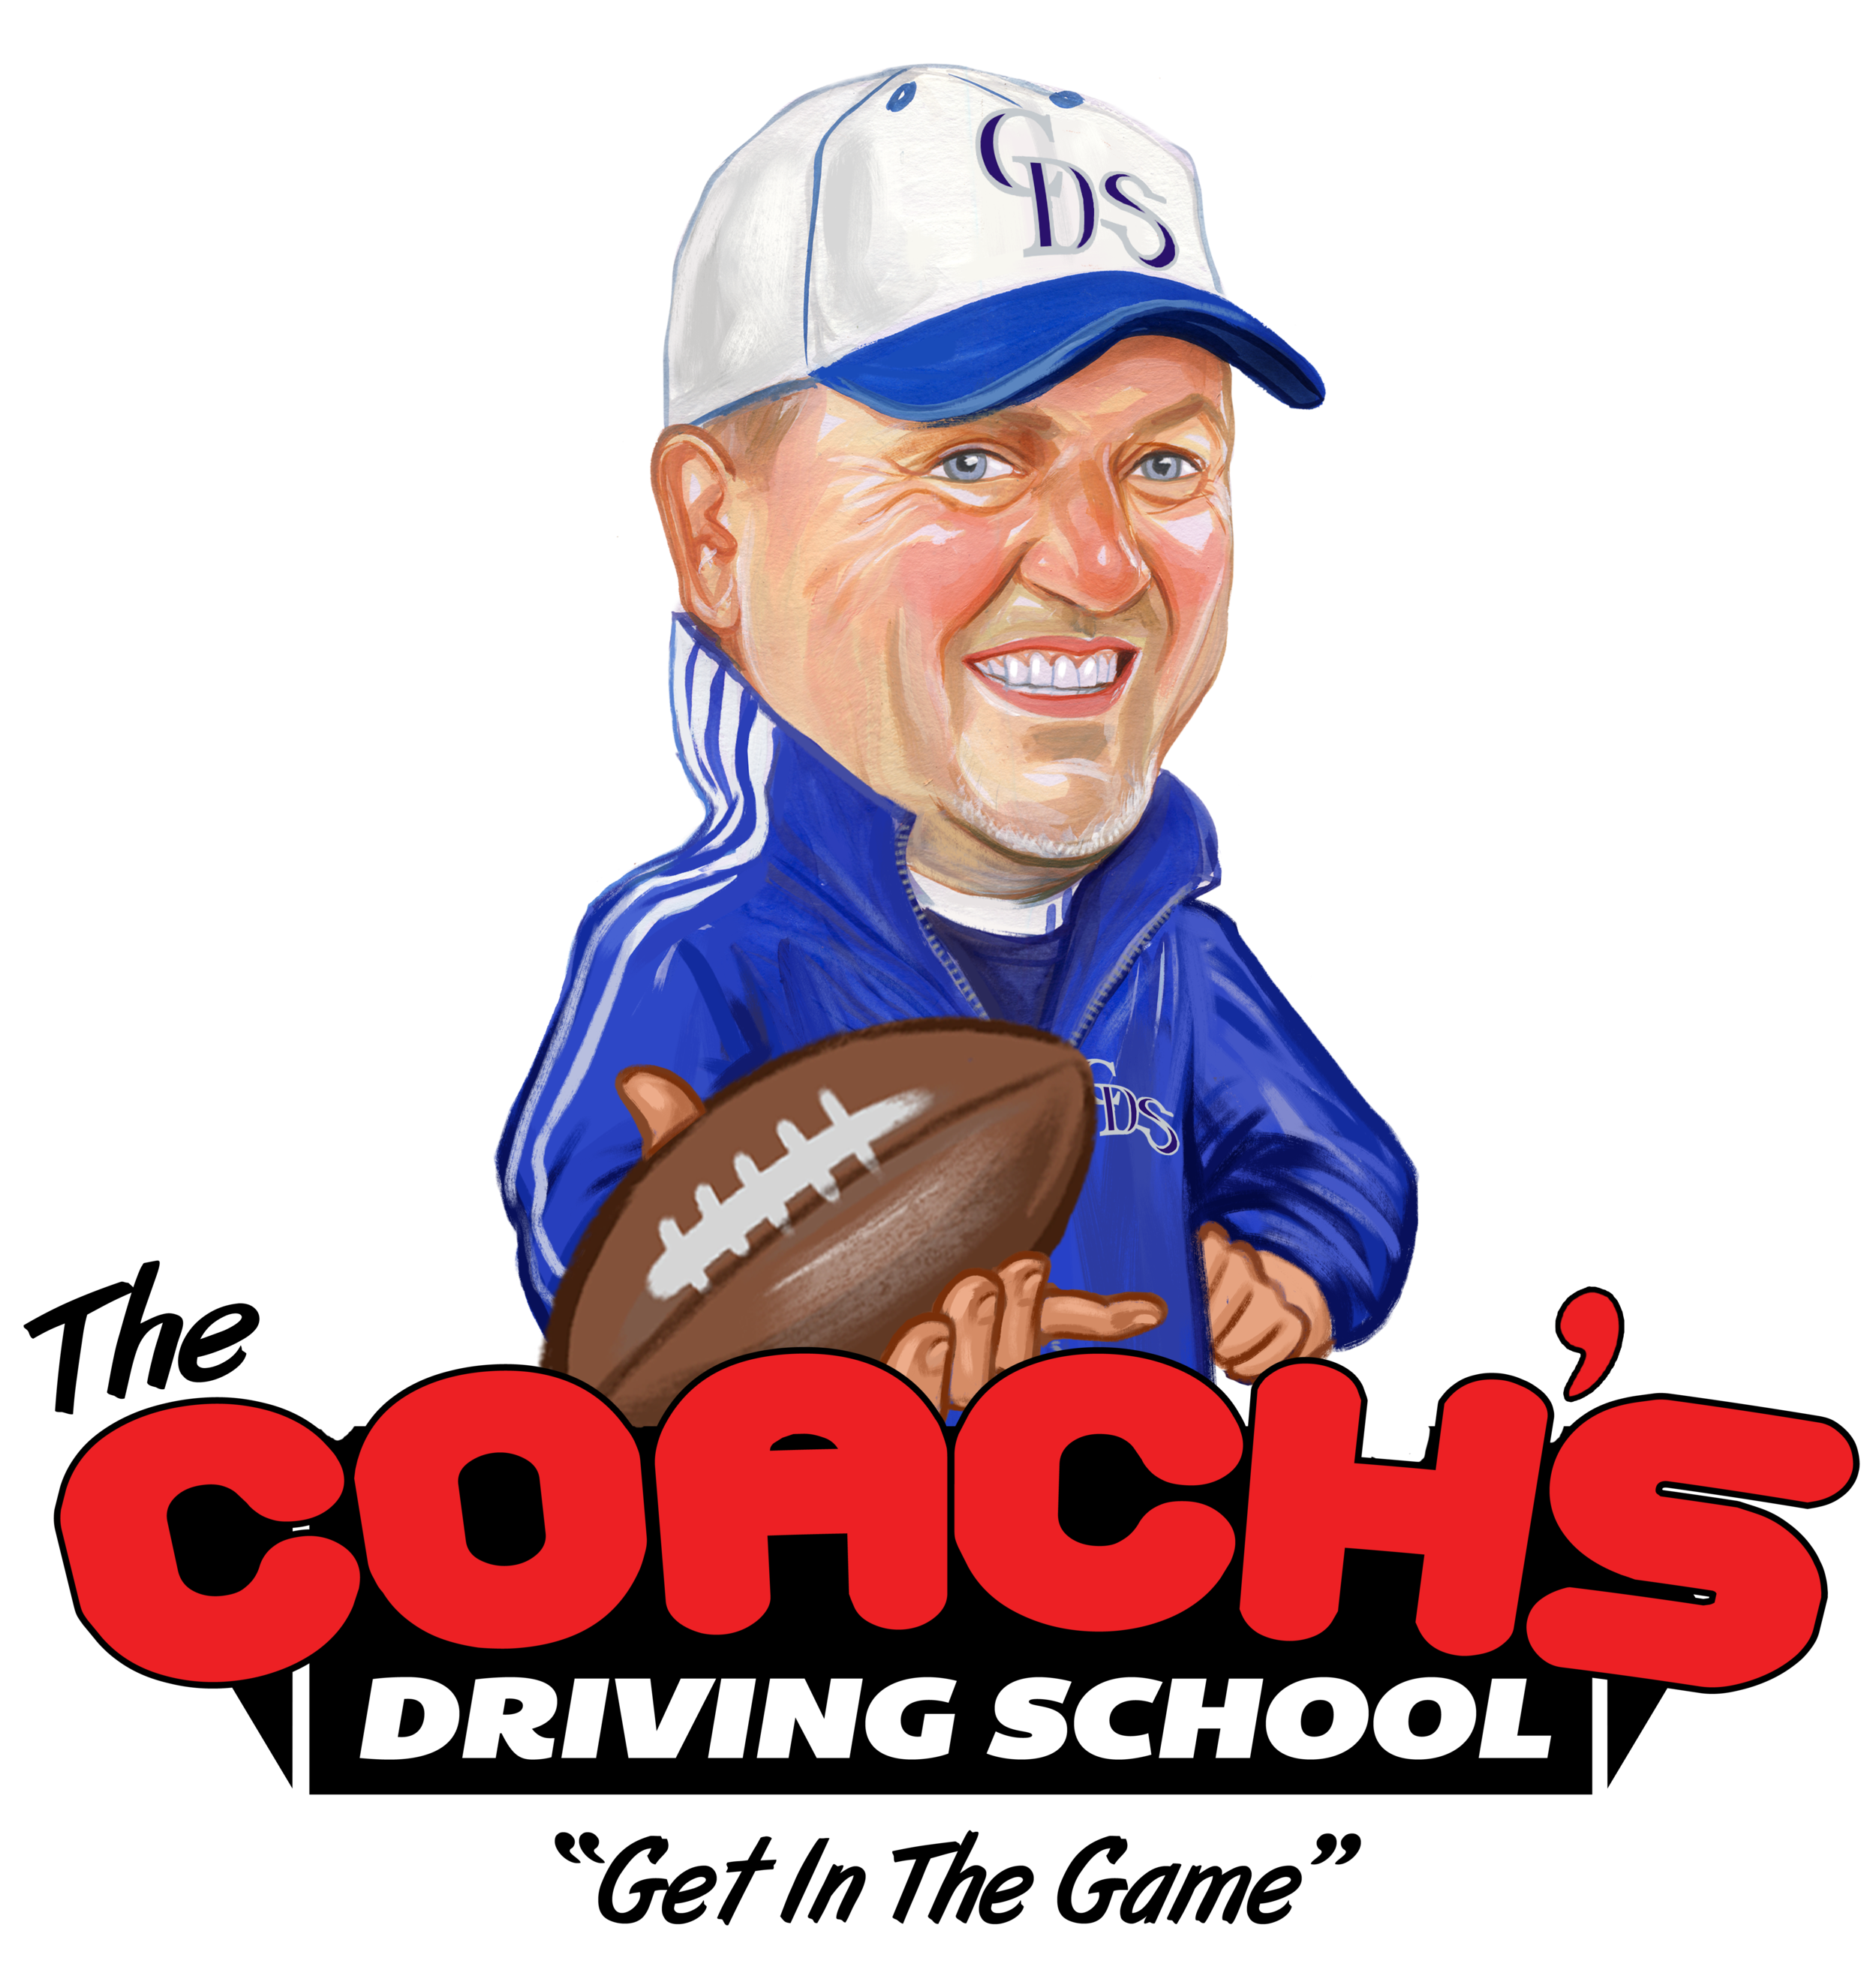 The Coachs Driving School 16 Hour Course